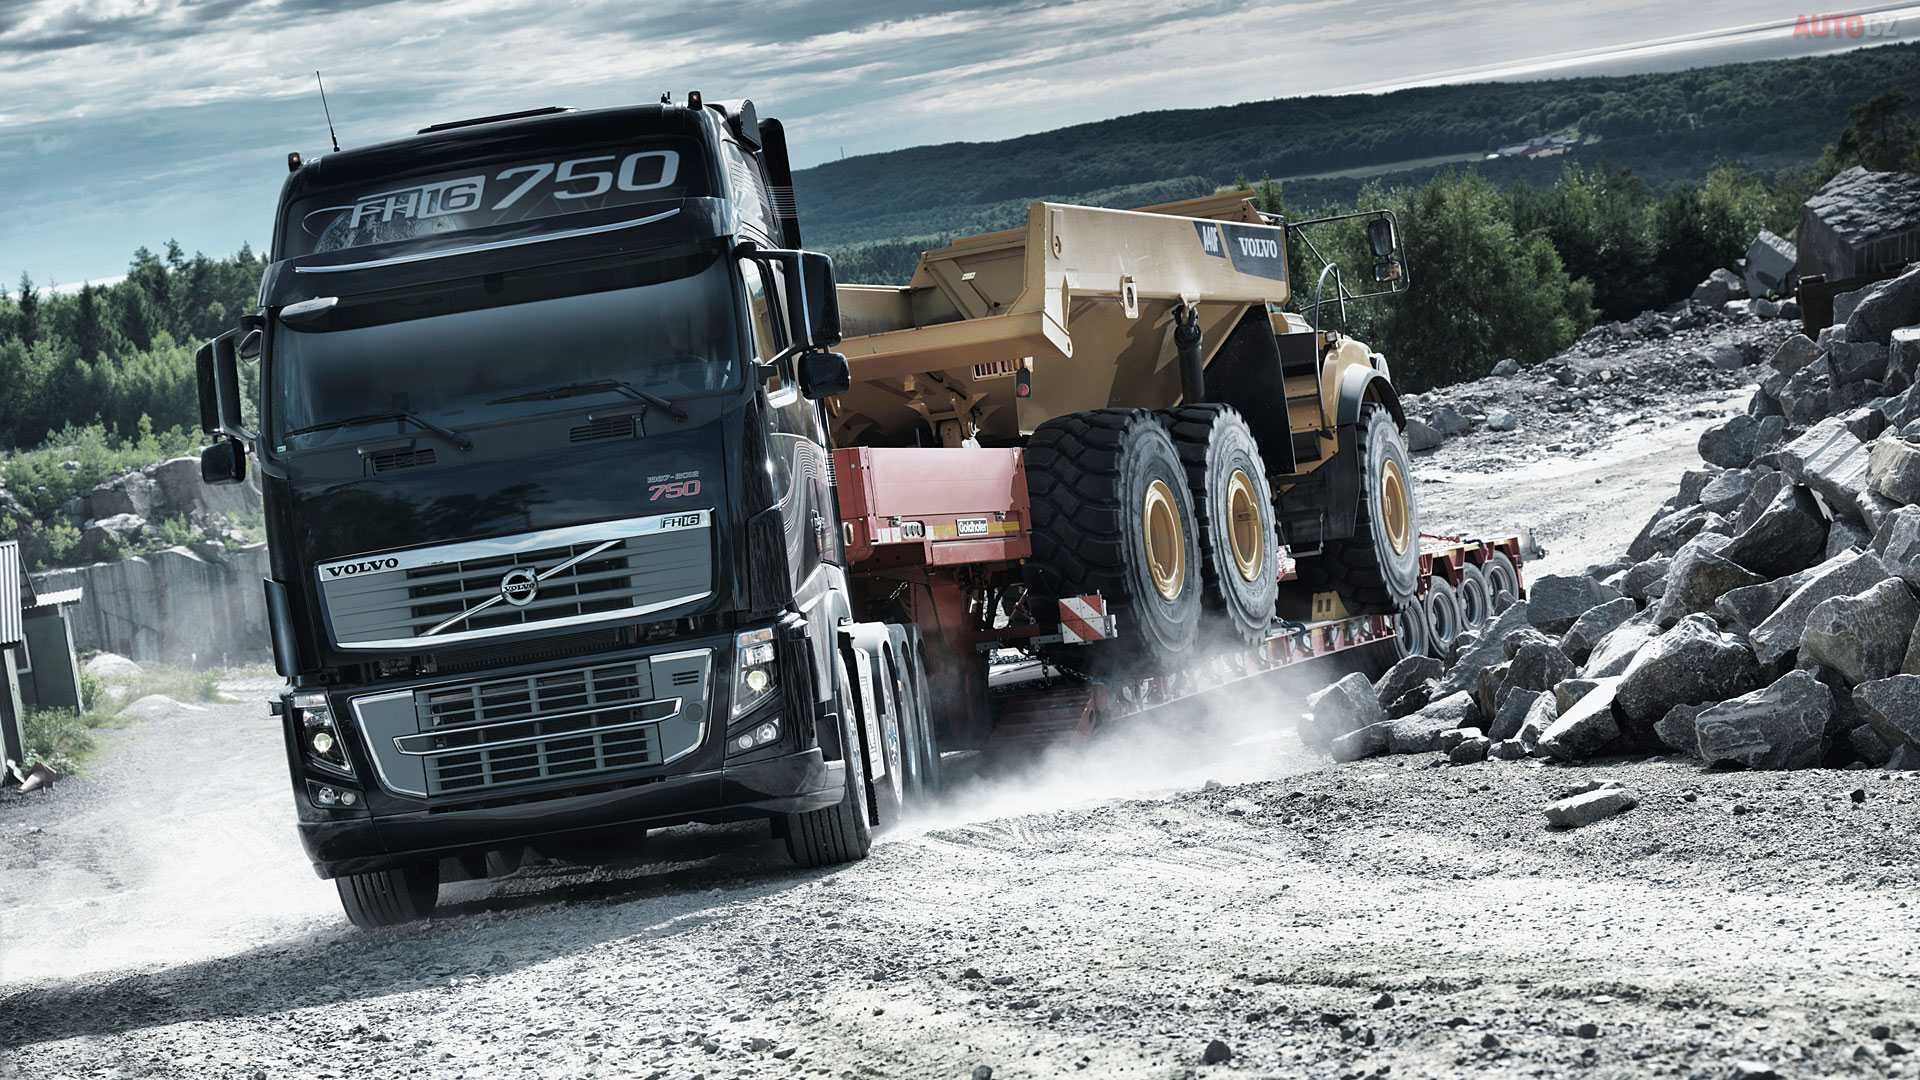 Volvo Truck Wallpaper HD Resolution #UjG